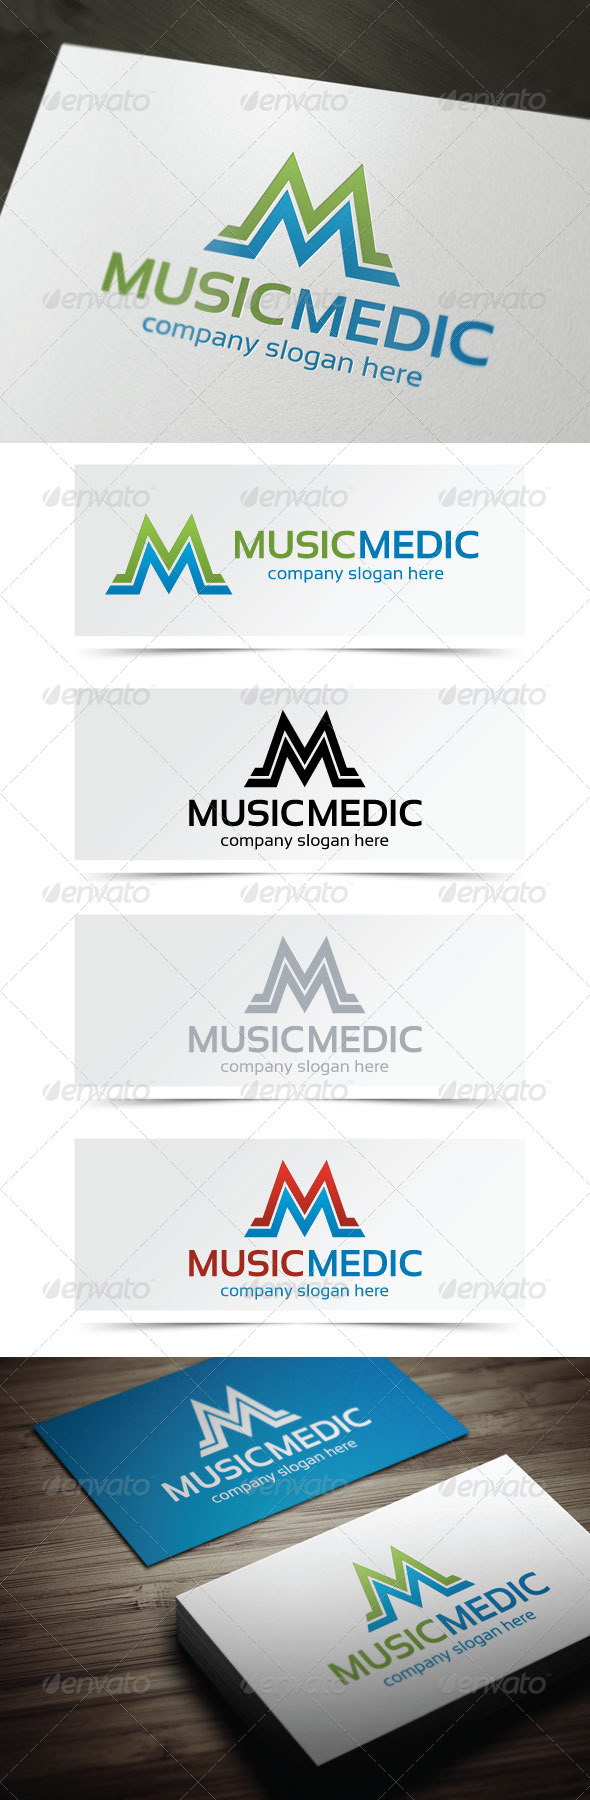 GraphicRiver Music Medic 4995293